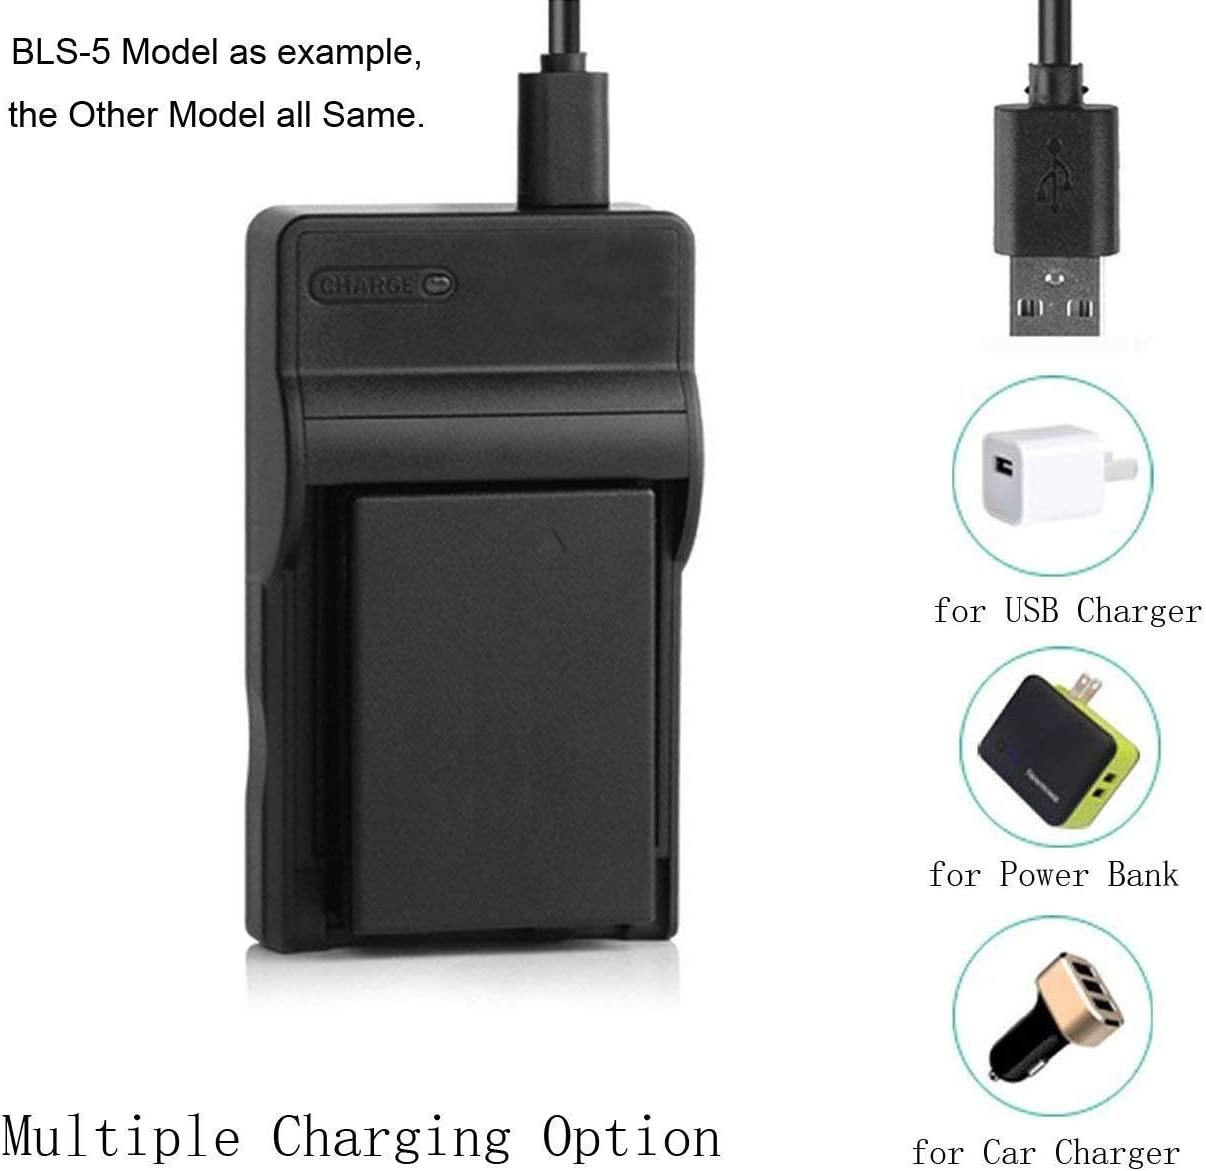 GZ-MG67EZ Digital Camcorder Battery Charger for JVC Everio GZ-MG67E GZ-MG67EY GZ-MG67EX GZ-MG67EK